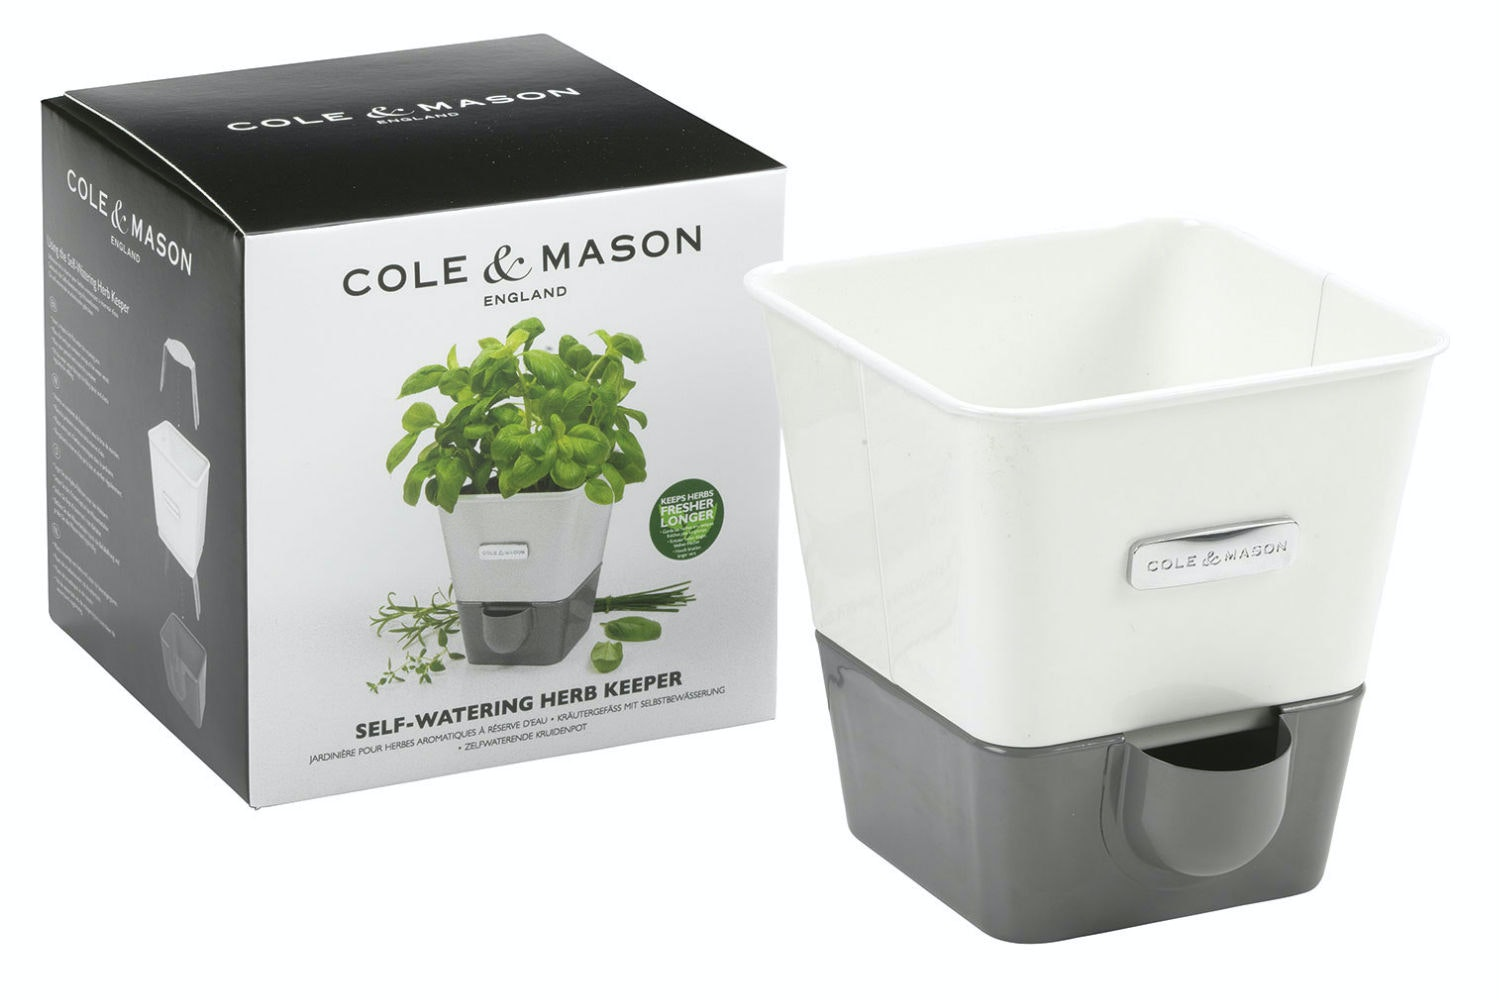 Cole & Mason Single Herb Keeper